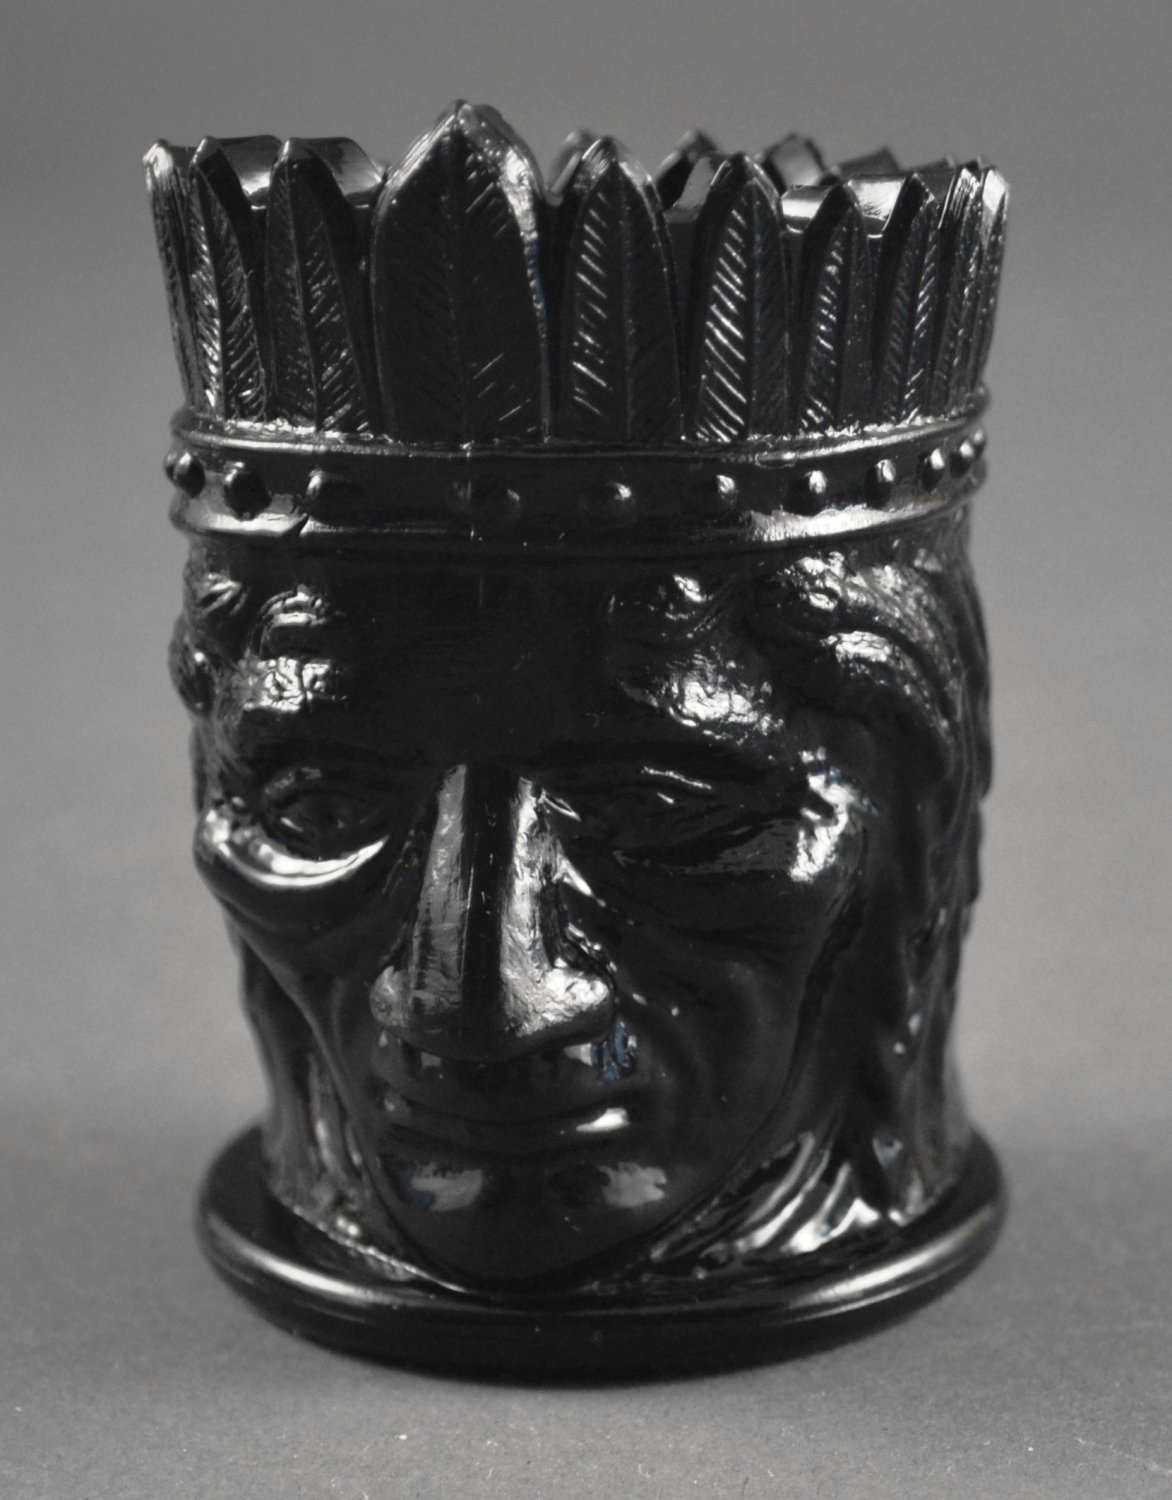 St. Clair Indian Head Black Opaque Vintage Glass Toothpick Holder